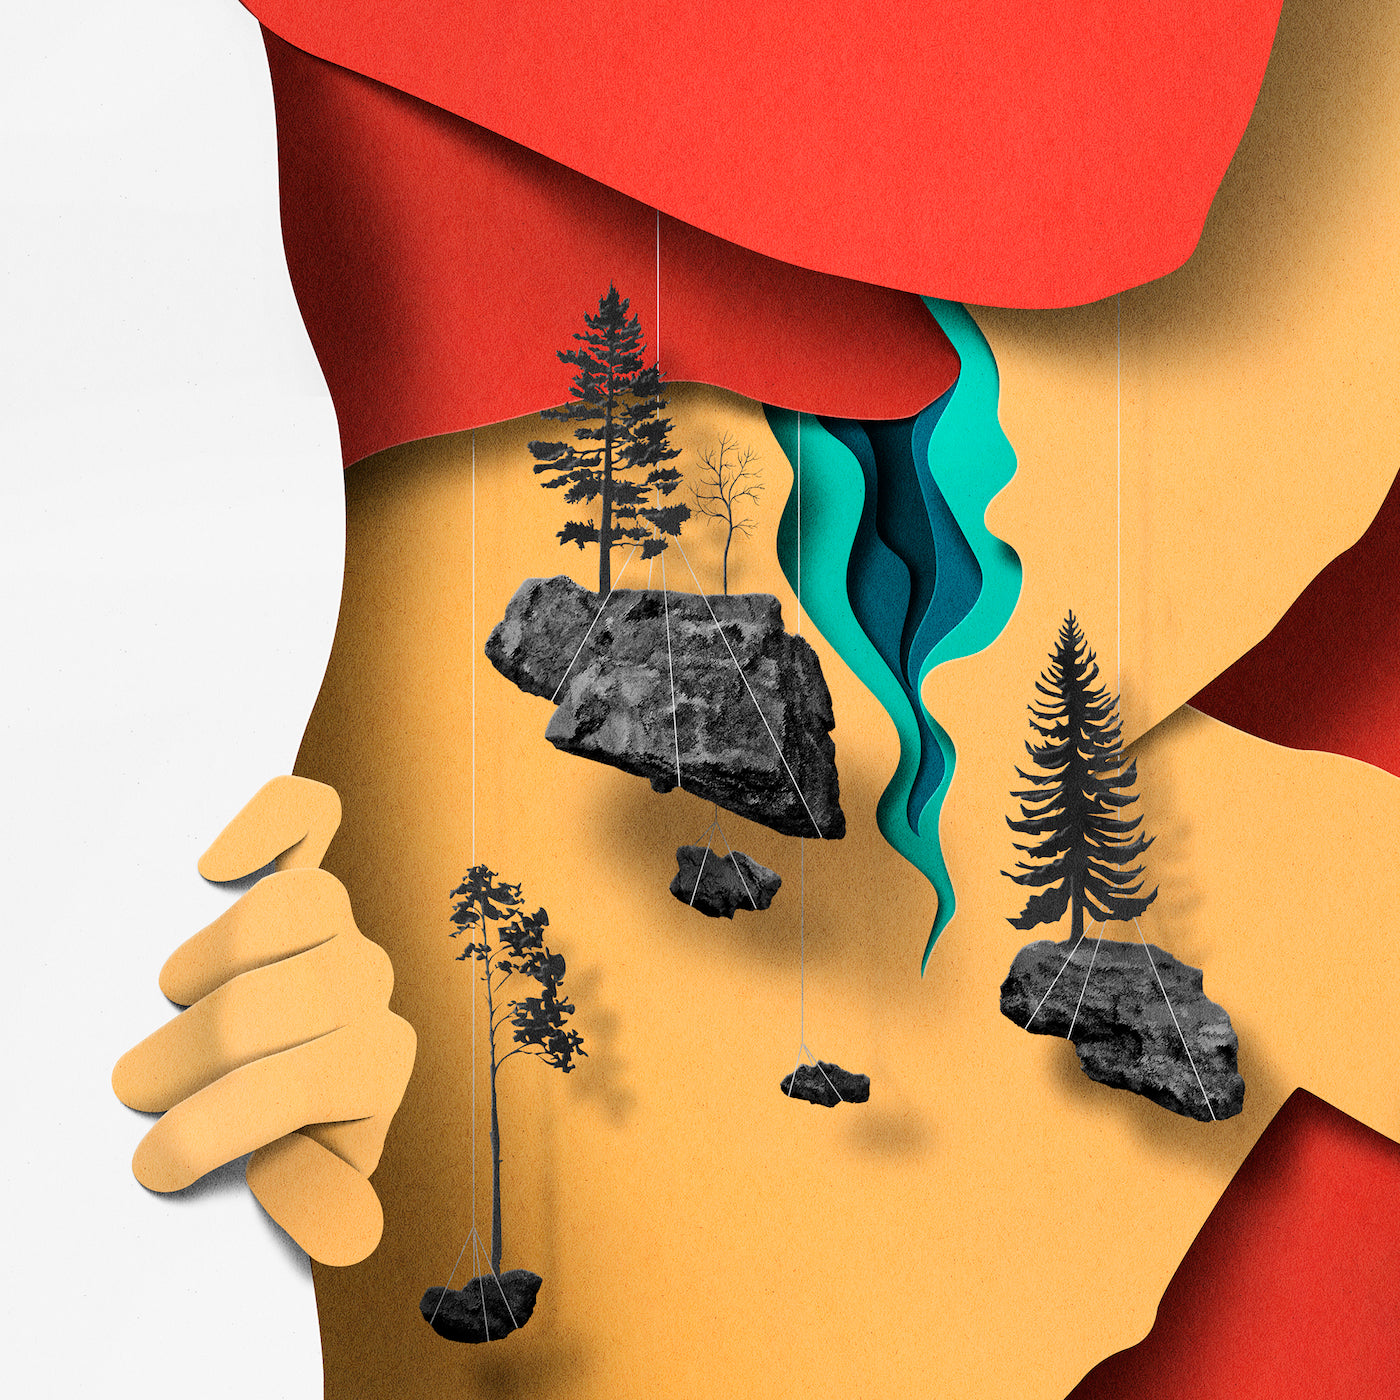 Myths by Eiko Ojala